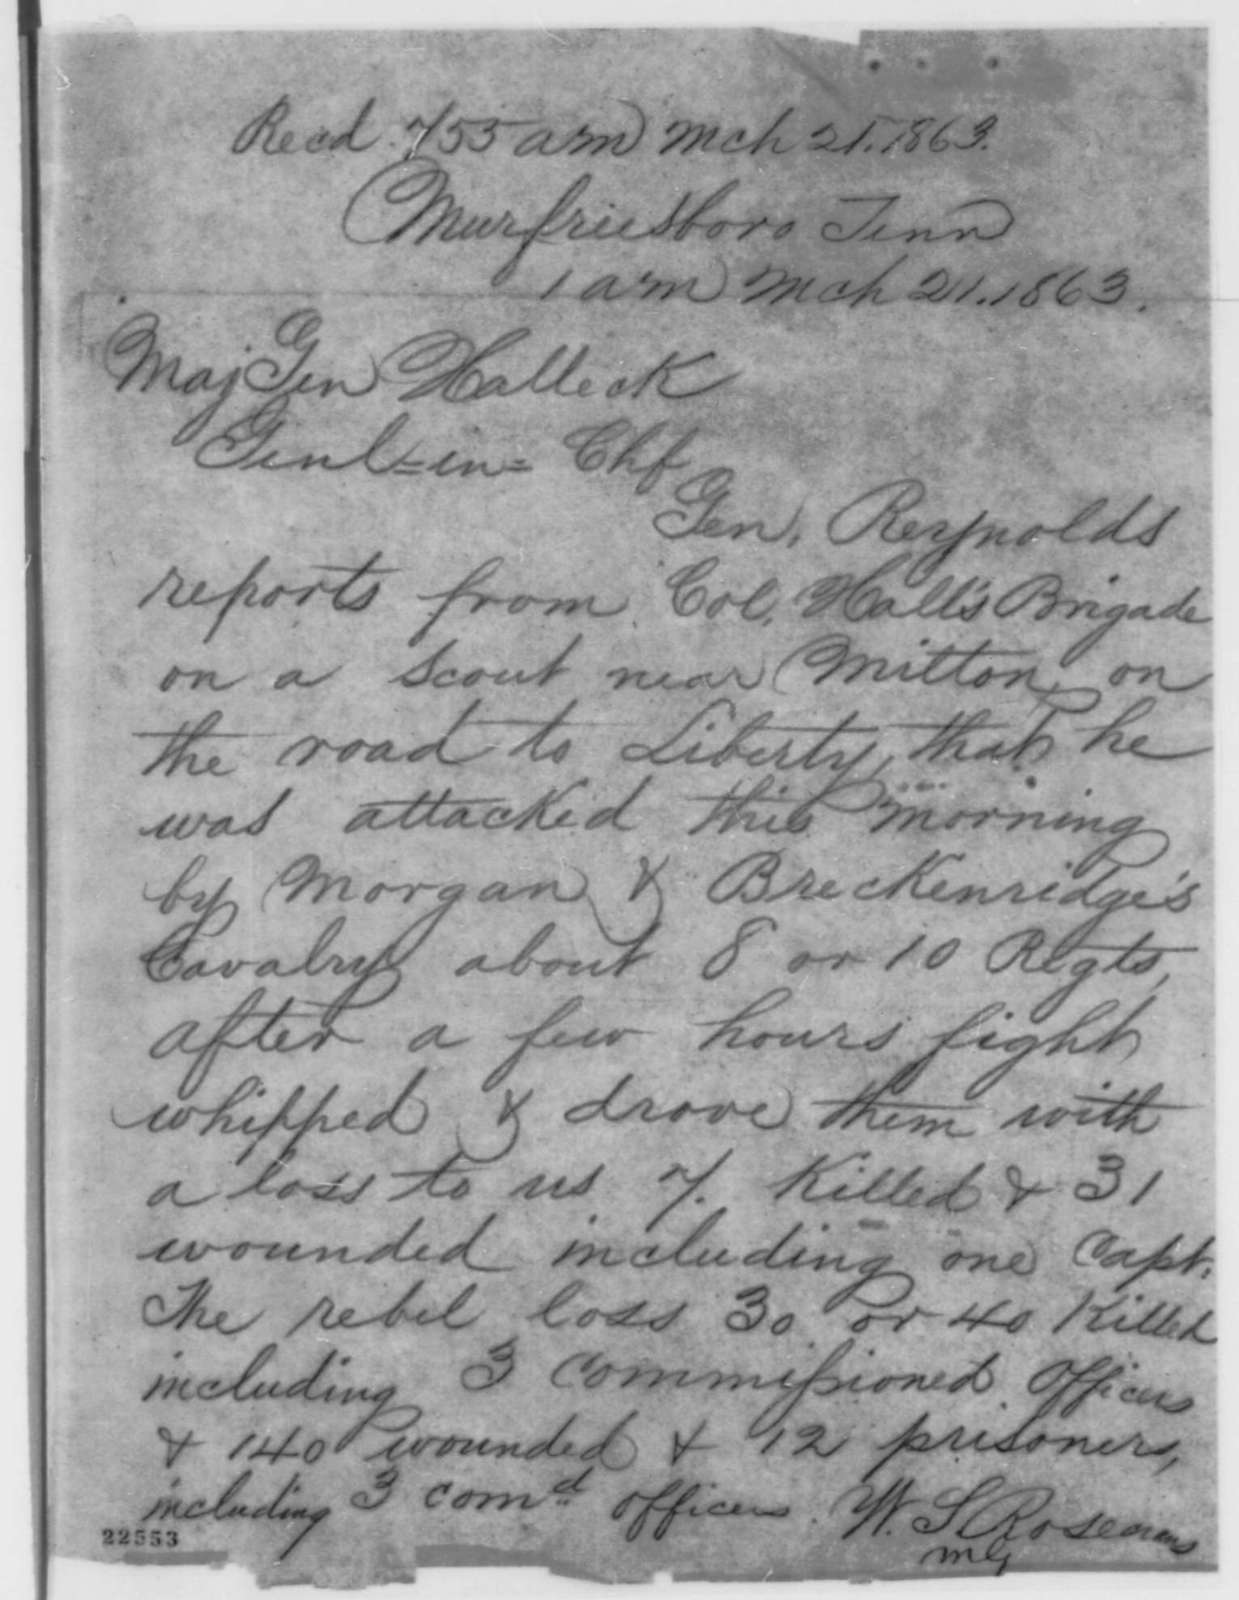 William S. Rosecrans to Henry W. Halleck, Saturday, March 21, 1863  (Telegram reporting results of an engagement)